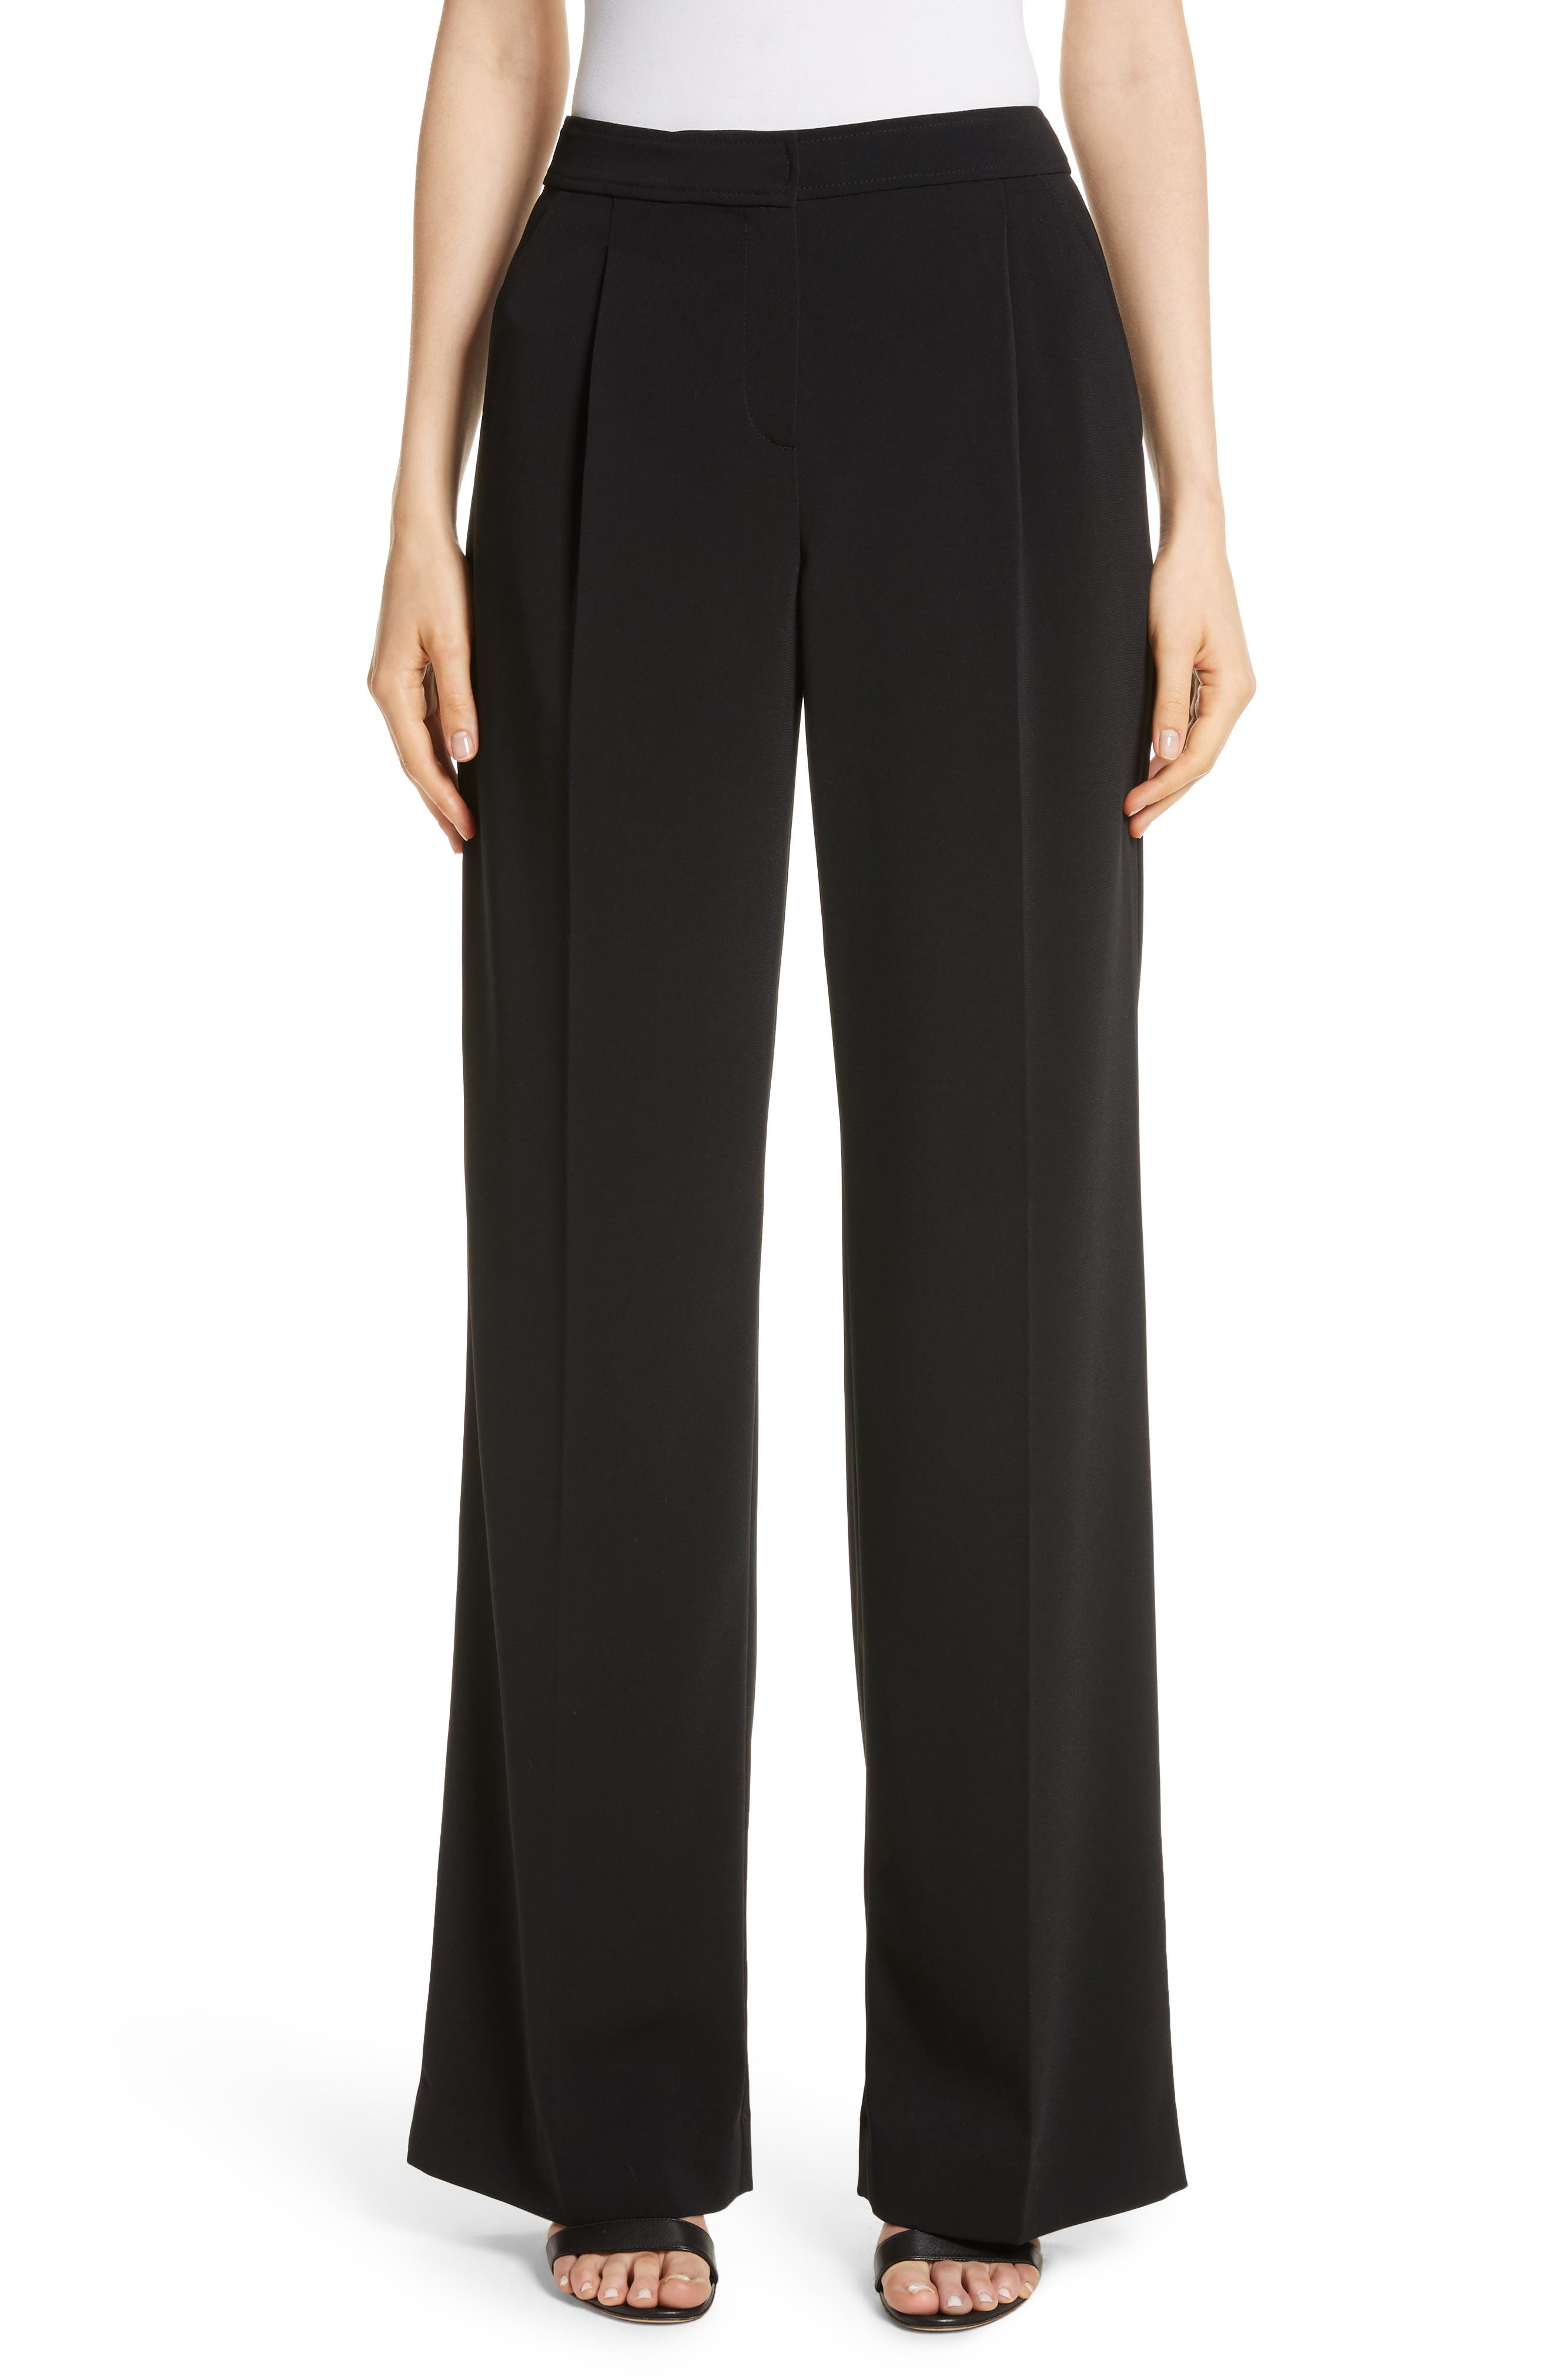 Alternate Image 1 Selected - St. John Collection Classic Stretch Cady Pants